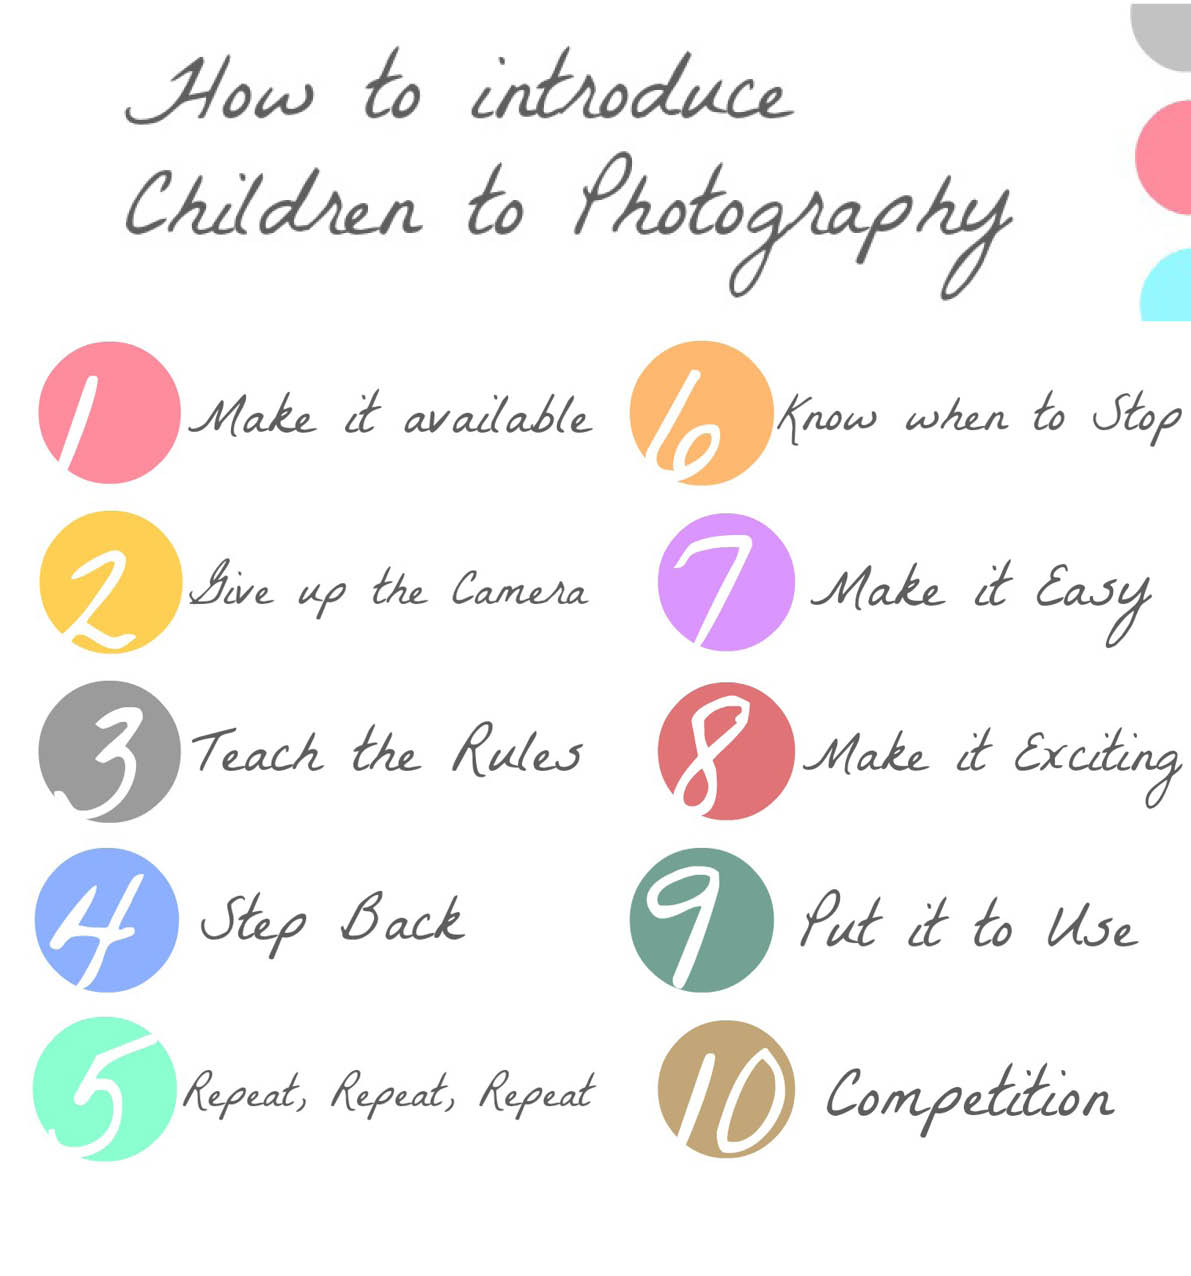 How To Introduce Children To Photography